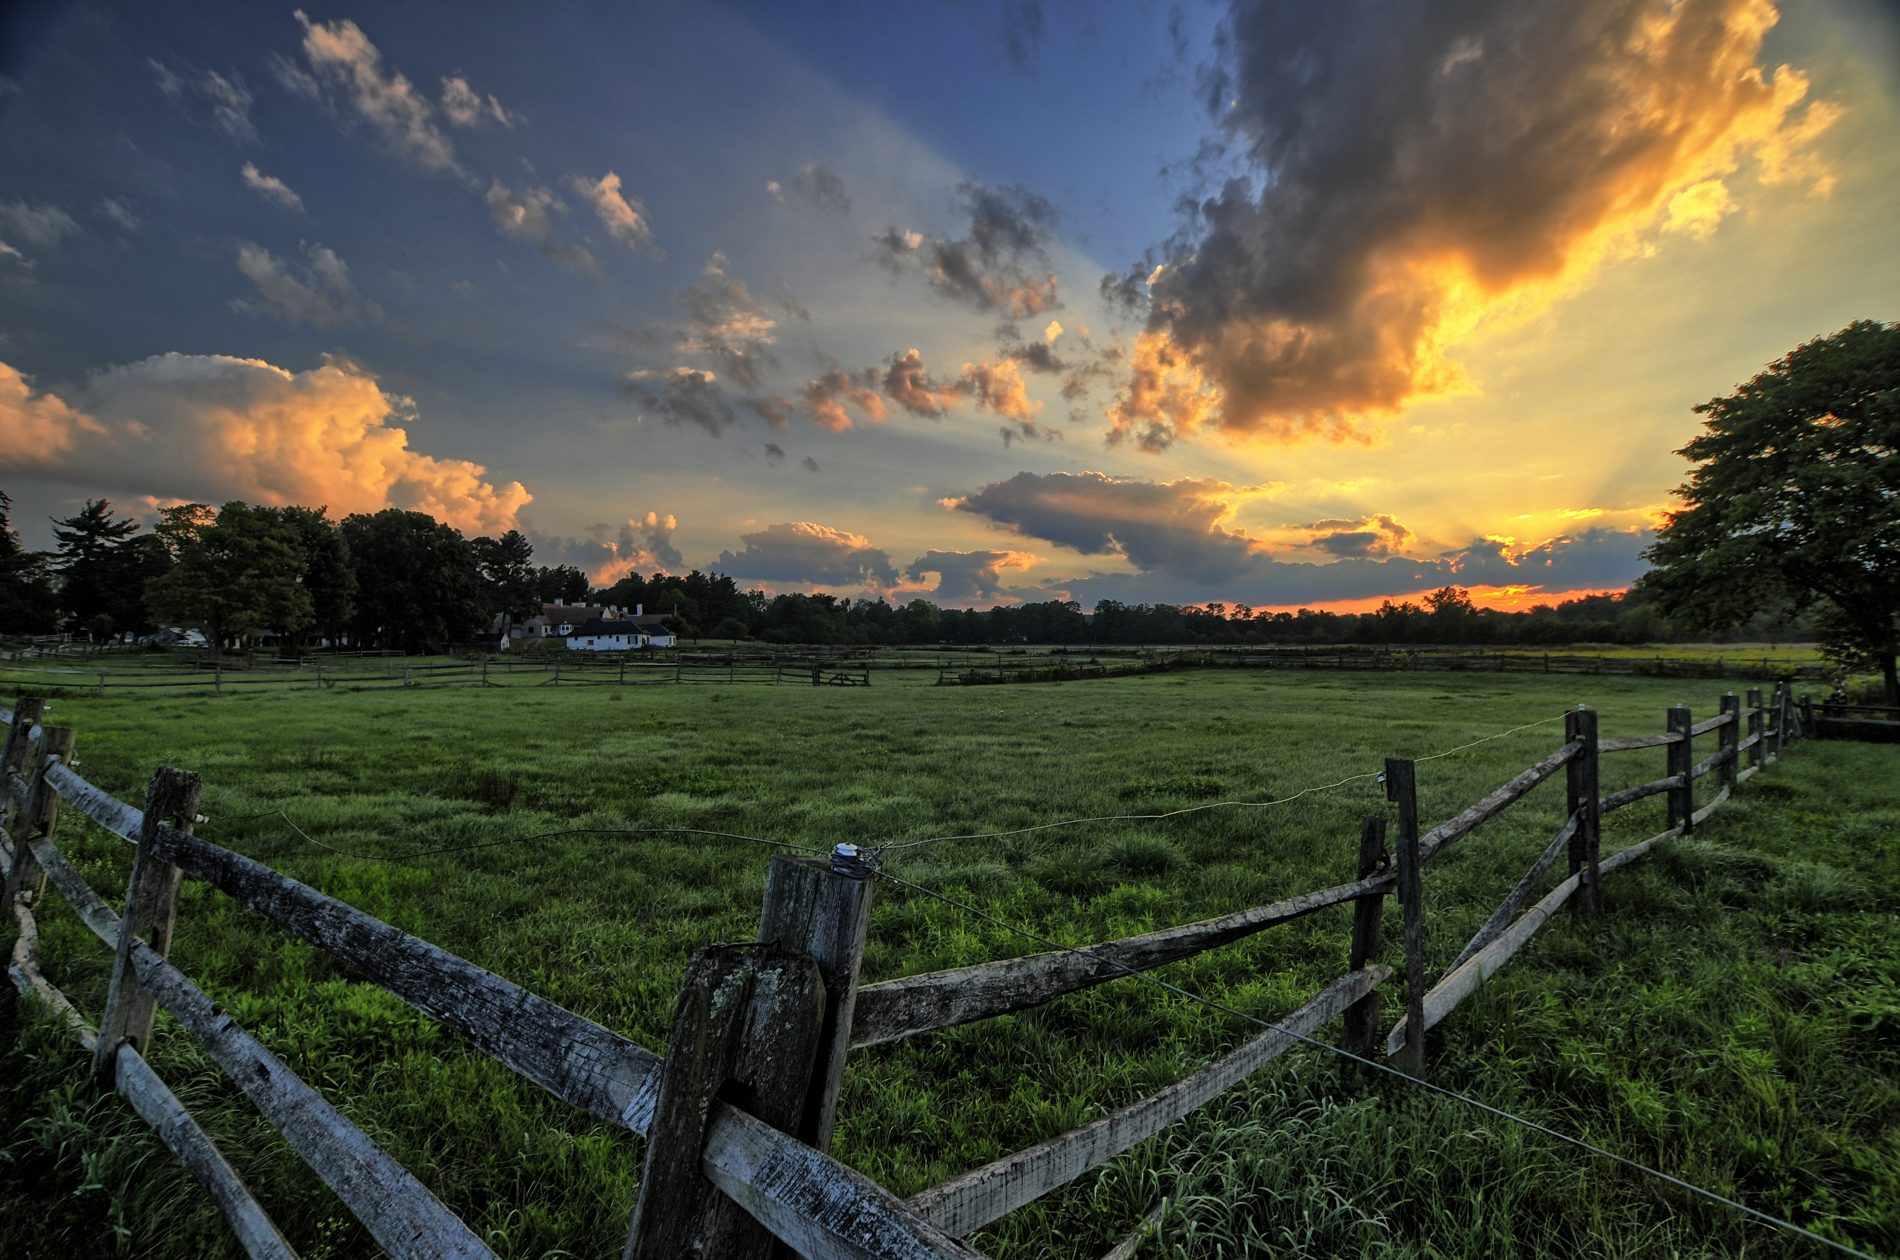 The sun sets over Knox Farm. (Photo courtesy of Peter Potter.)